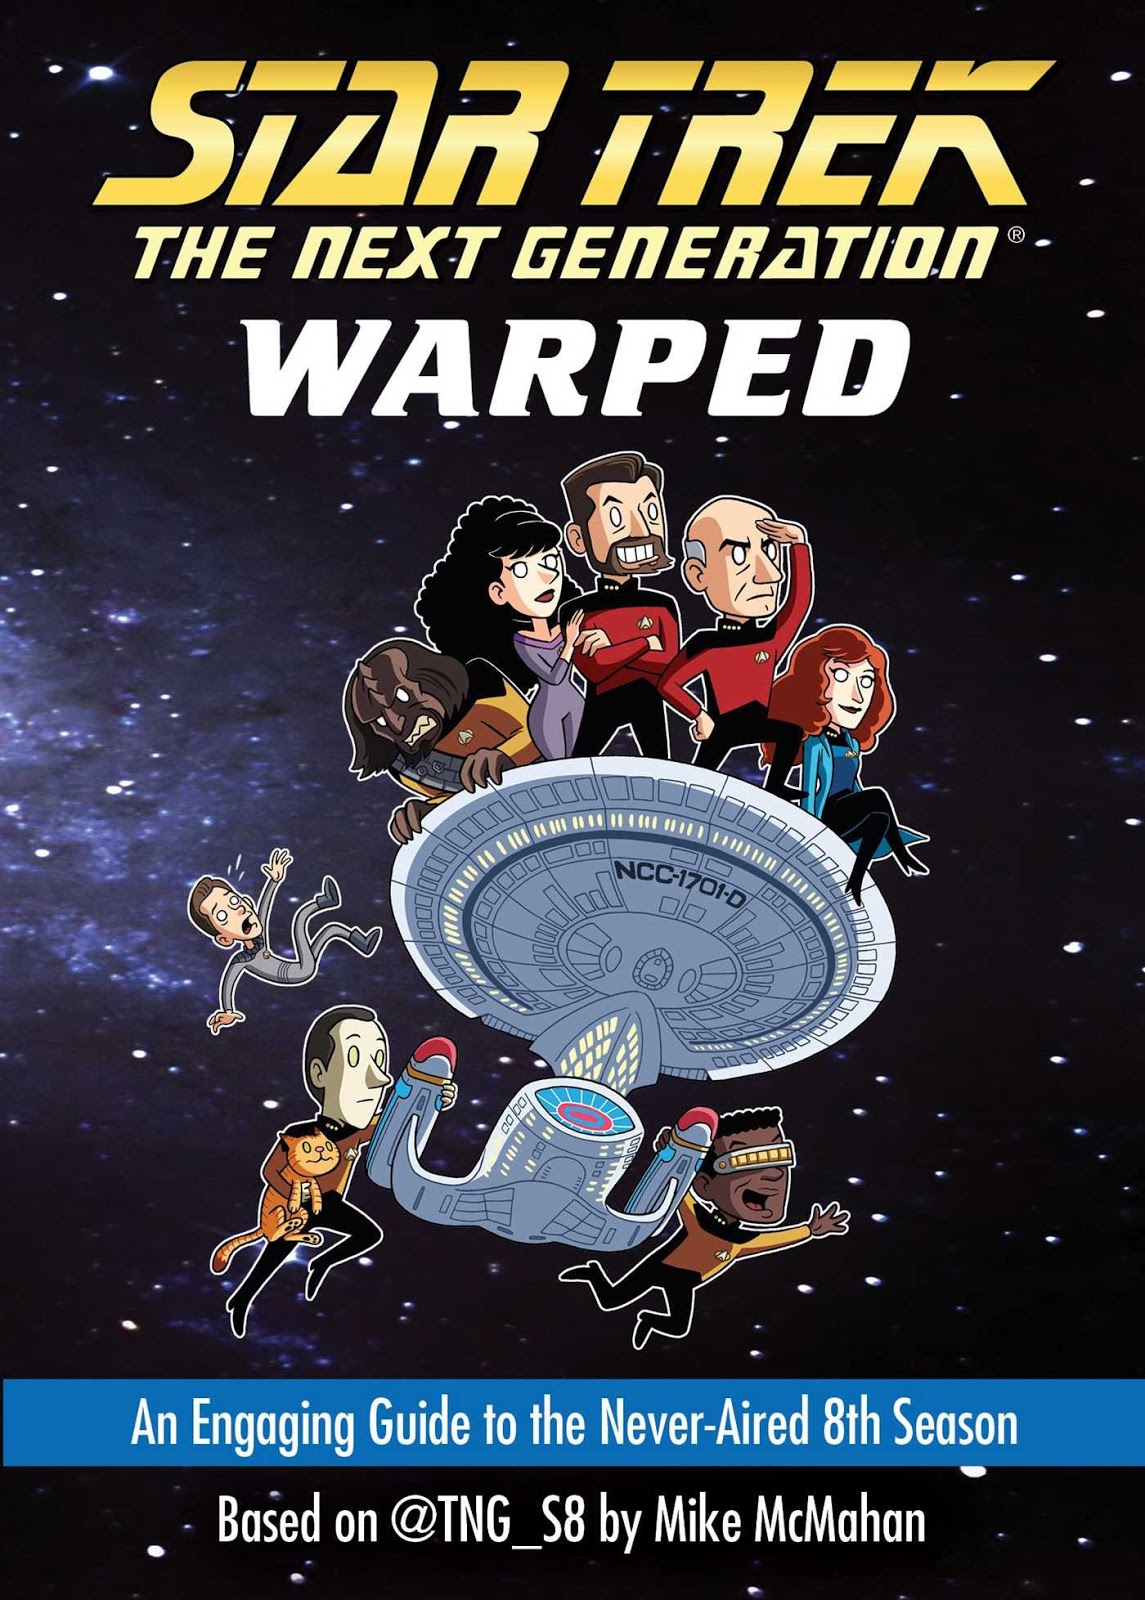 Star Trek The Next Generation Warped cover.jpg